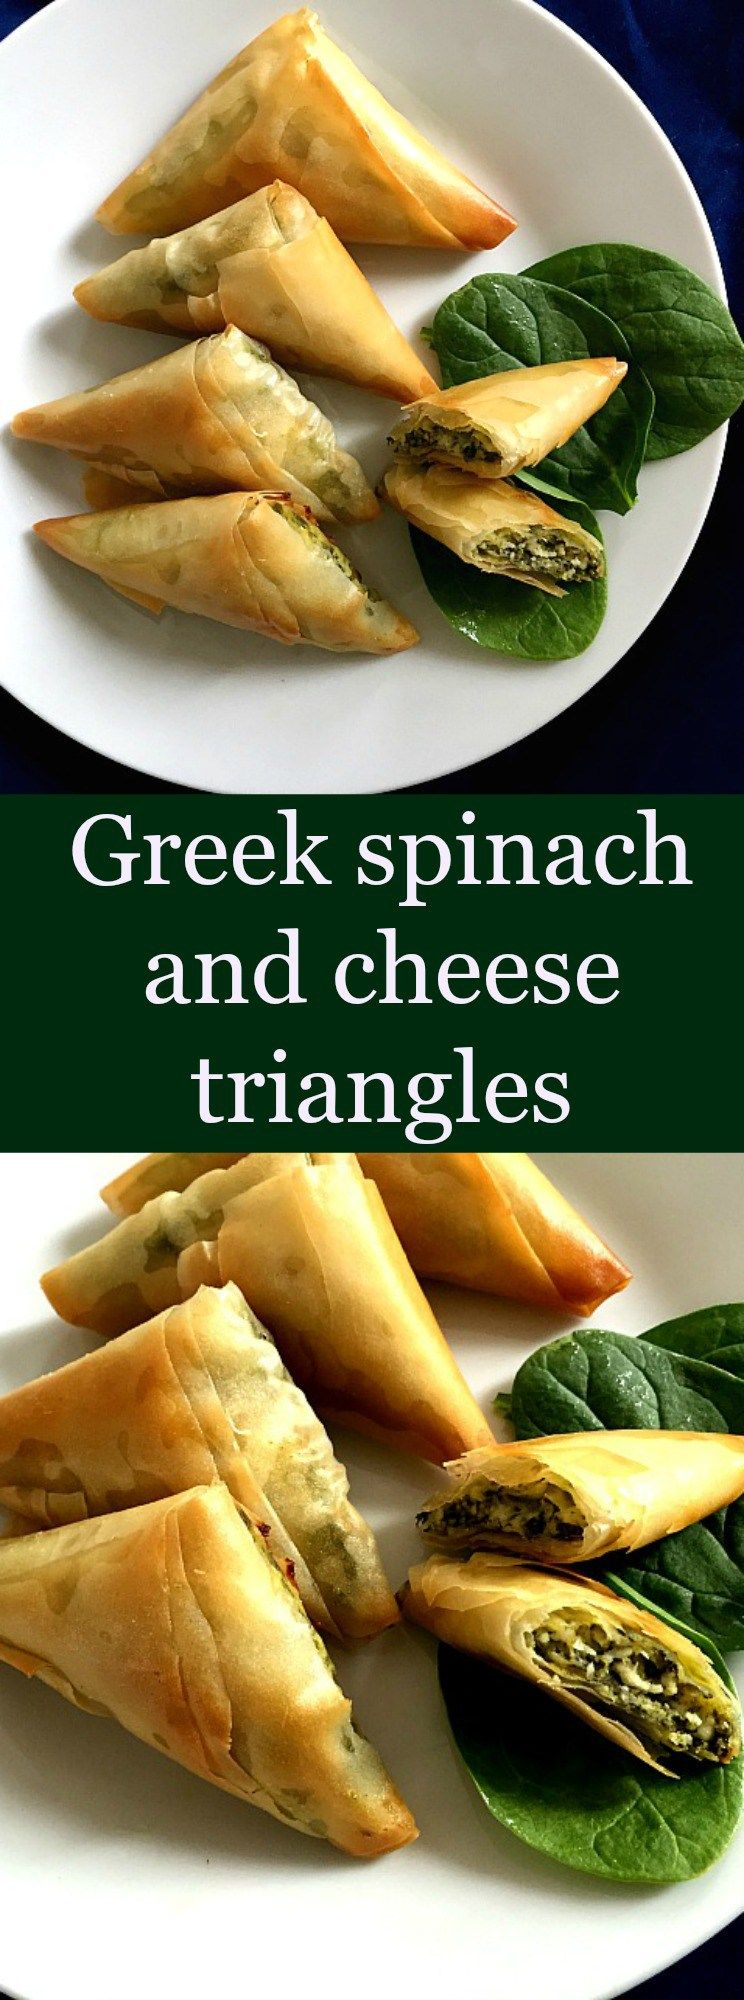 Greek spinach and cheese triangles or spanakopita a popular recipe greek spinach and cheese triangles or spanakopita a popular recipe all over the world delicious easy to make they form the perfect snack or starter forumfinder Image collections